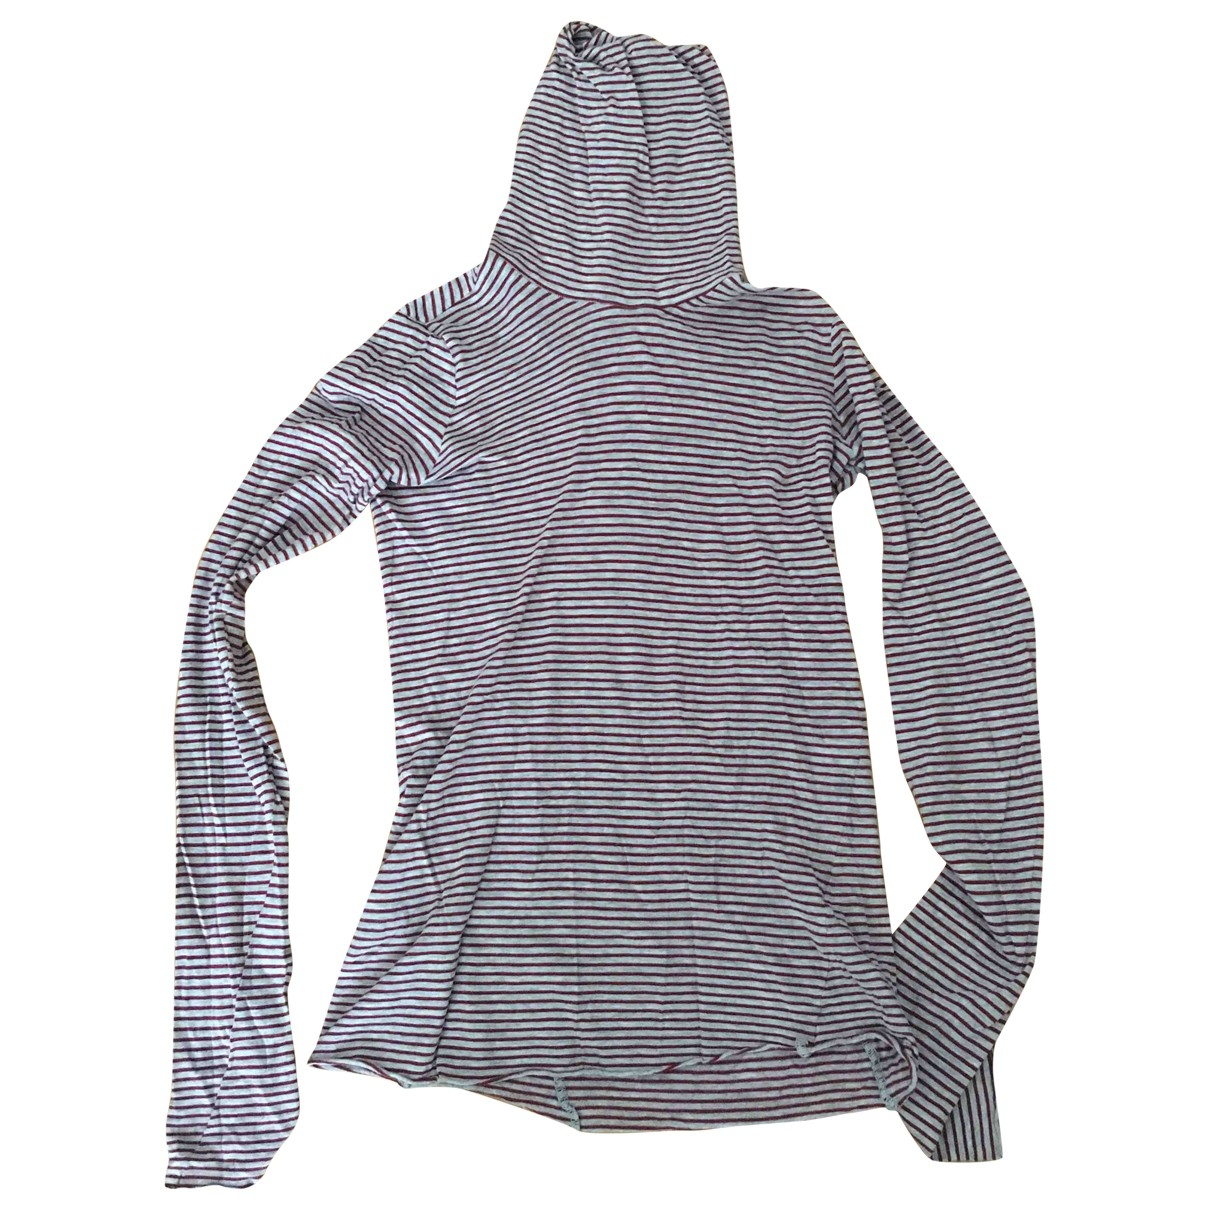 Mauro Grifoni \N Grey Cotton  top for Women 40 IT